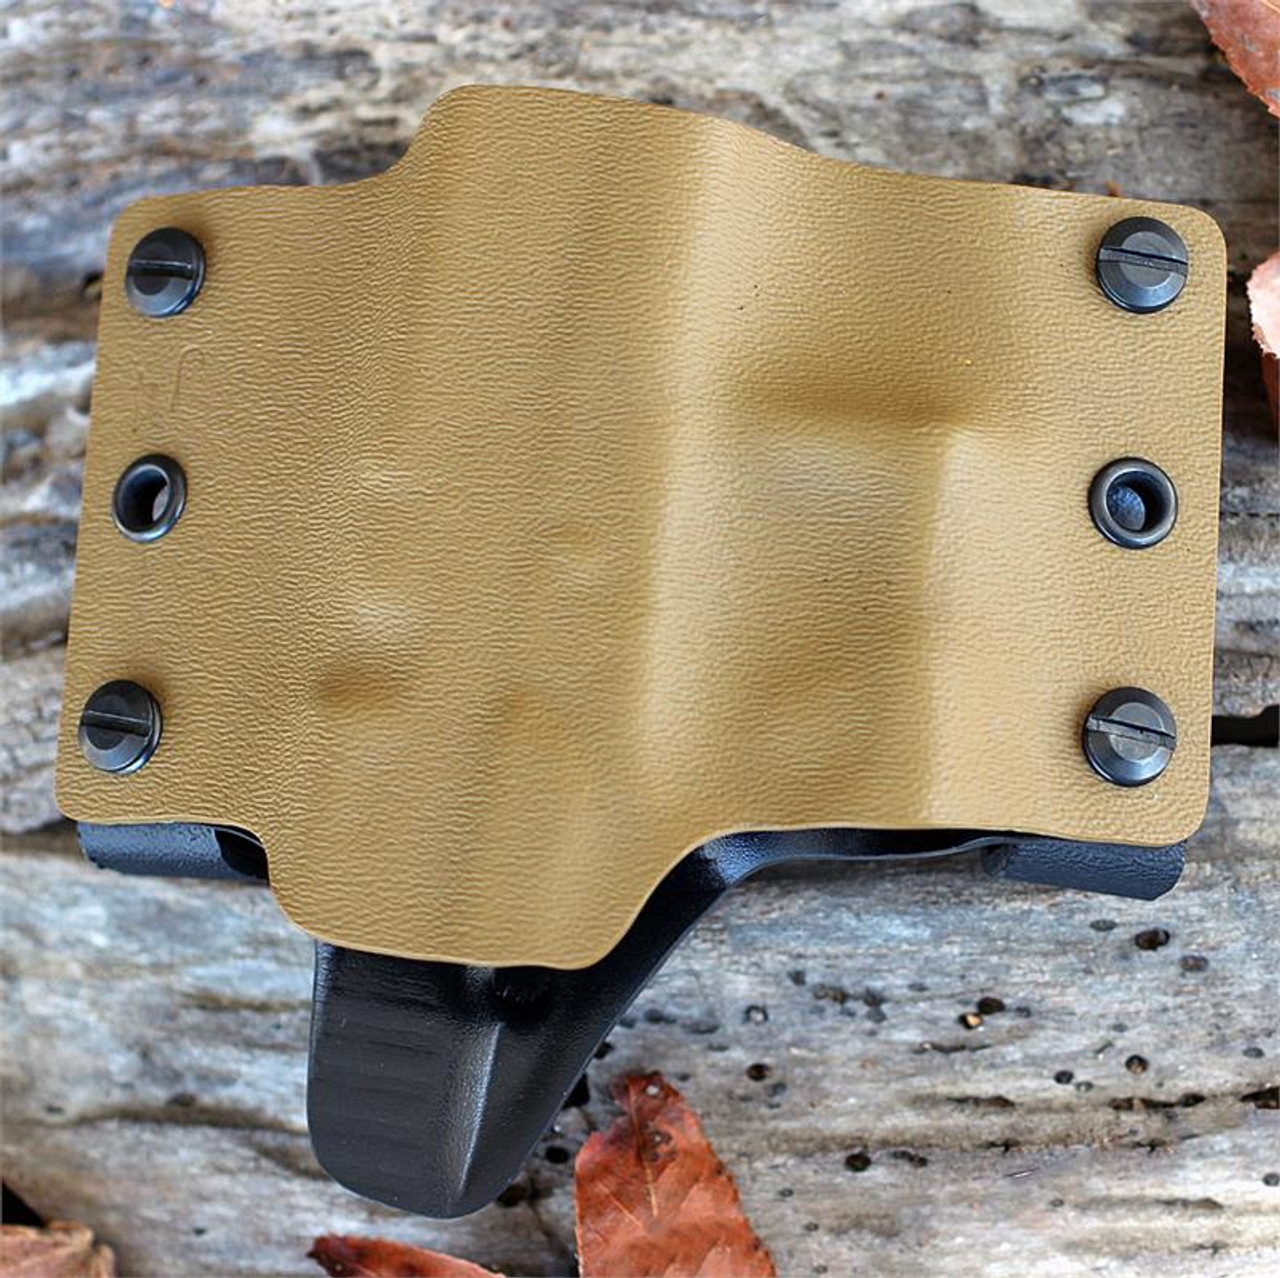 Concealment Muzzle Commander, Right Hand Glock 42-Coyote Brown